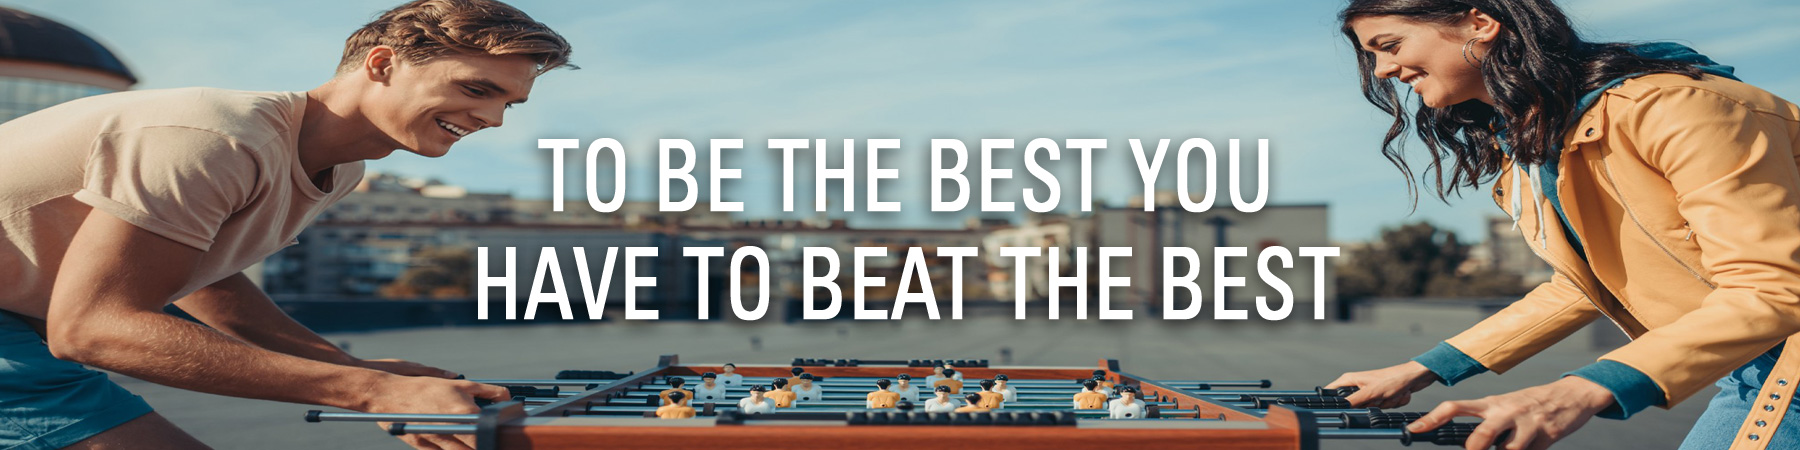 To Be The Best You Have to Beat The Best